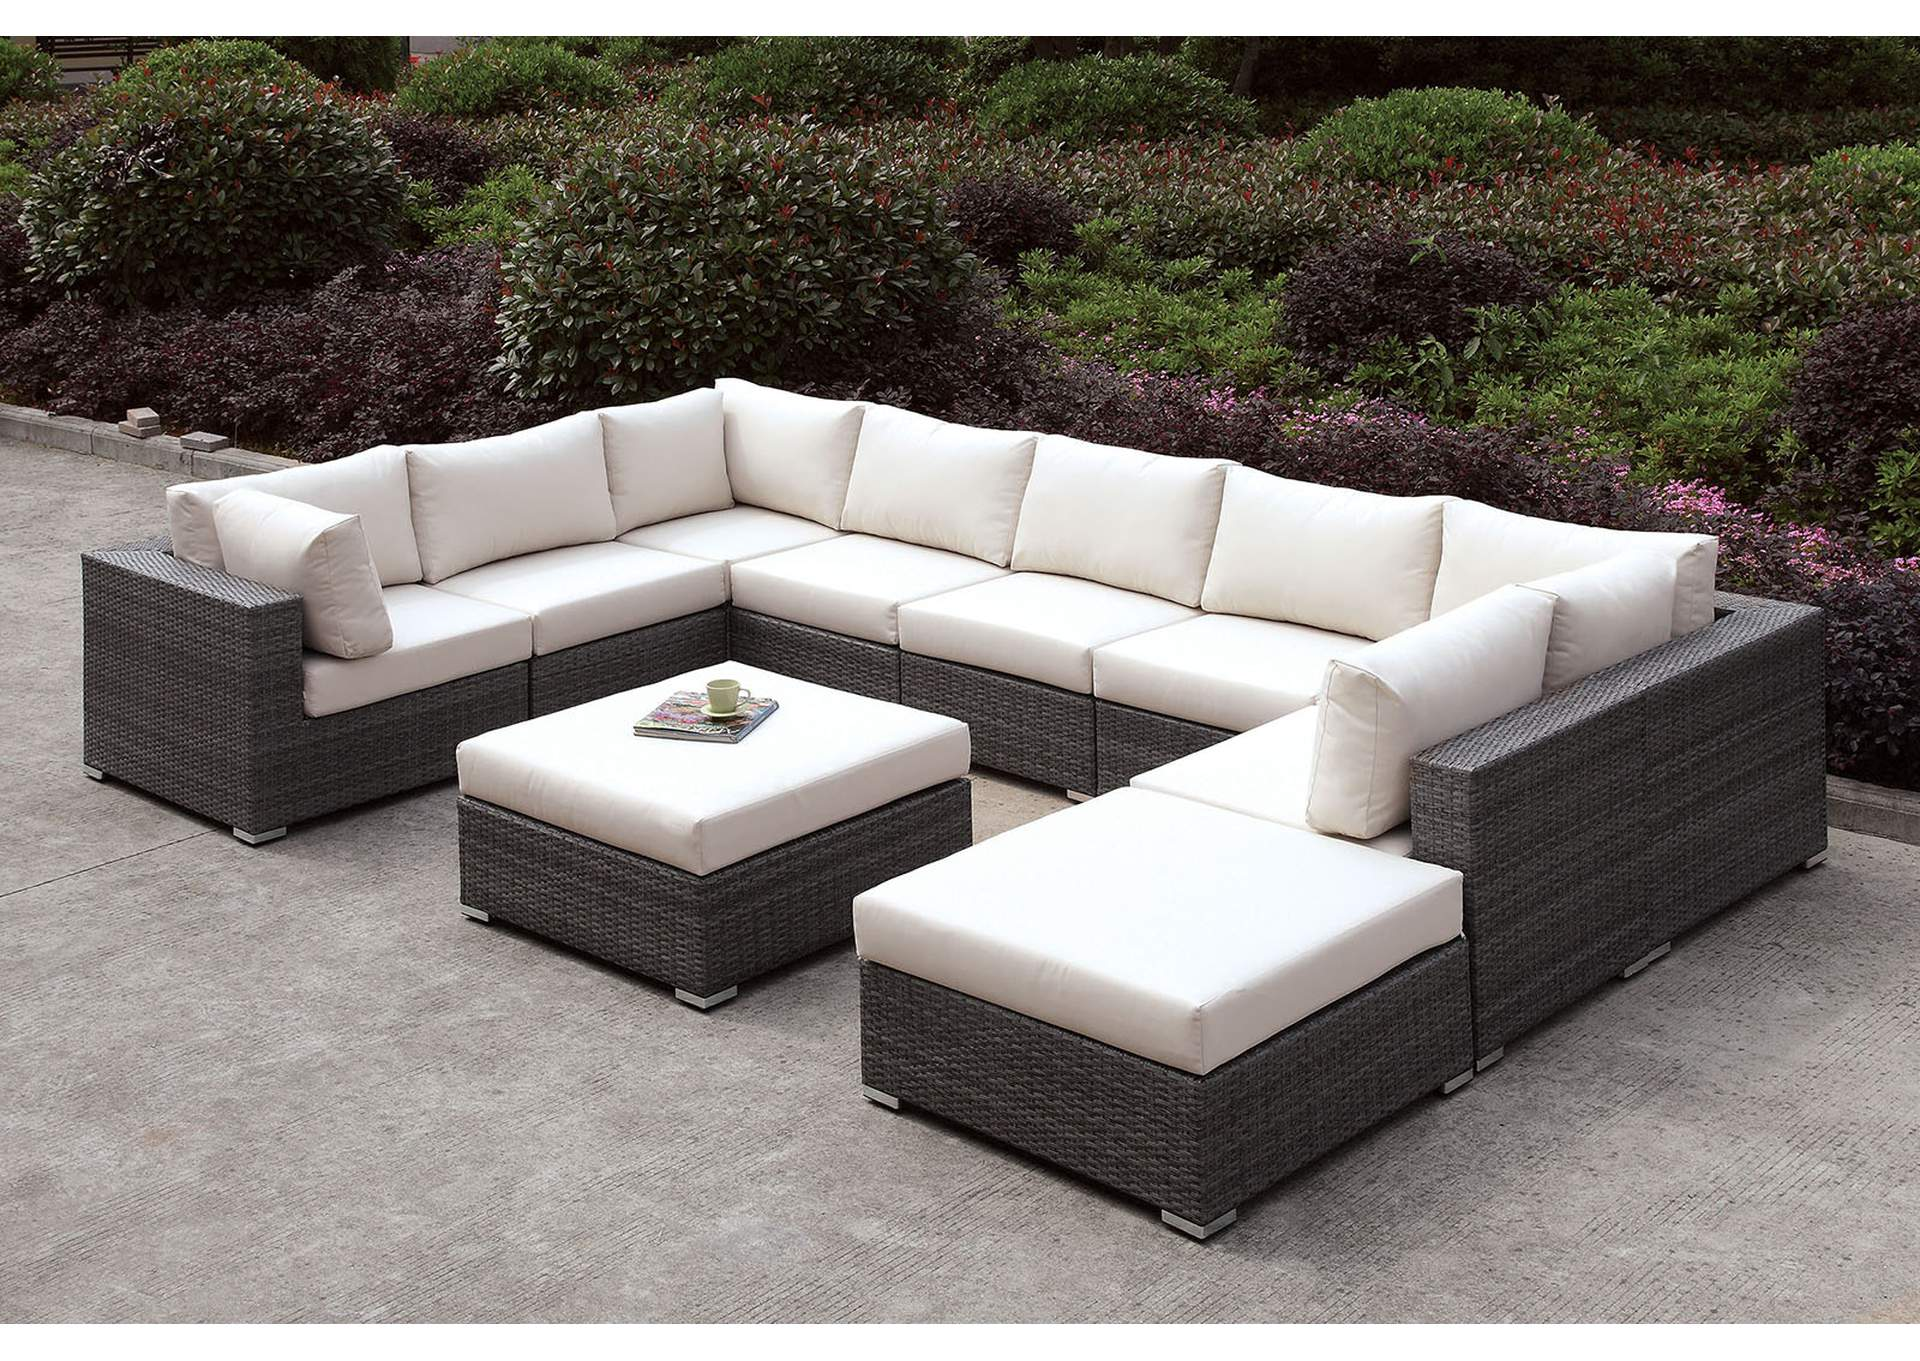 Outstanding Harlem Furniture Somani Light Gray Ivory Wicker U Sectional Gmtry Best Dining Table And Chair Ideas Images Gmtryco